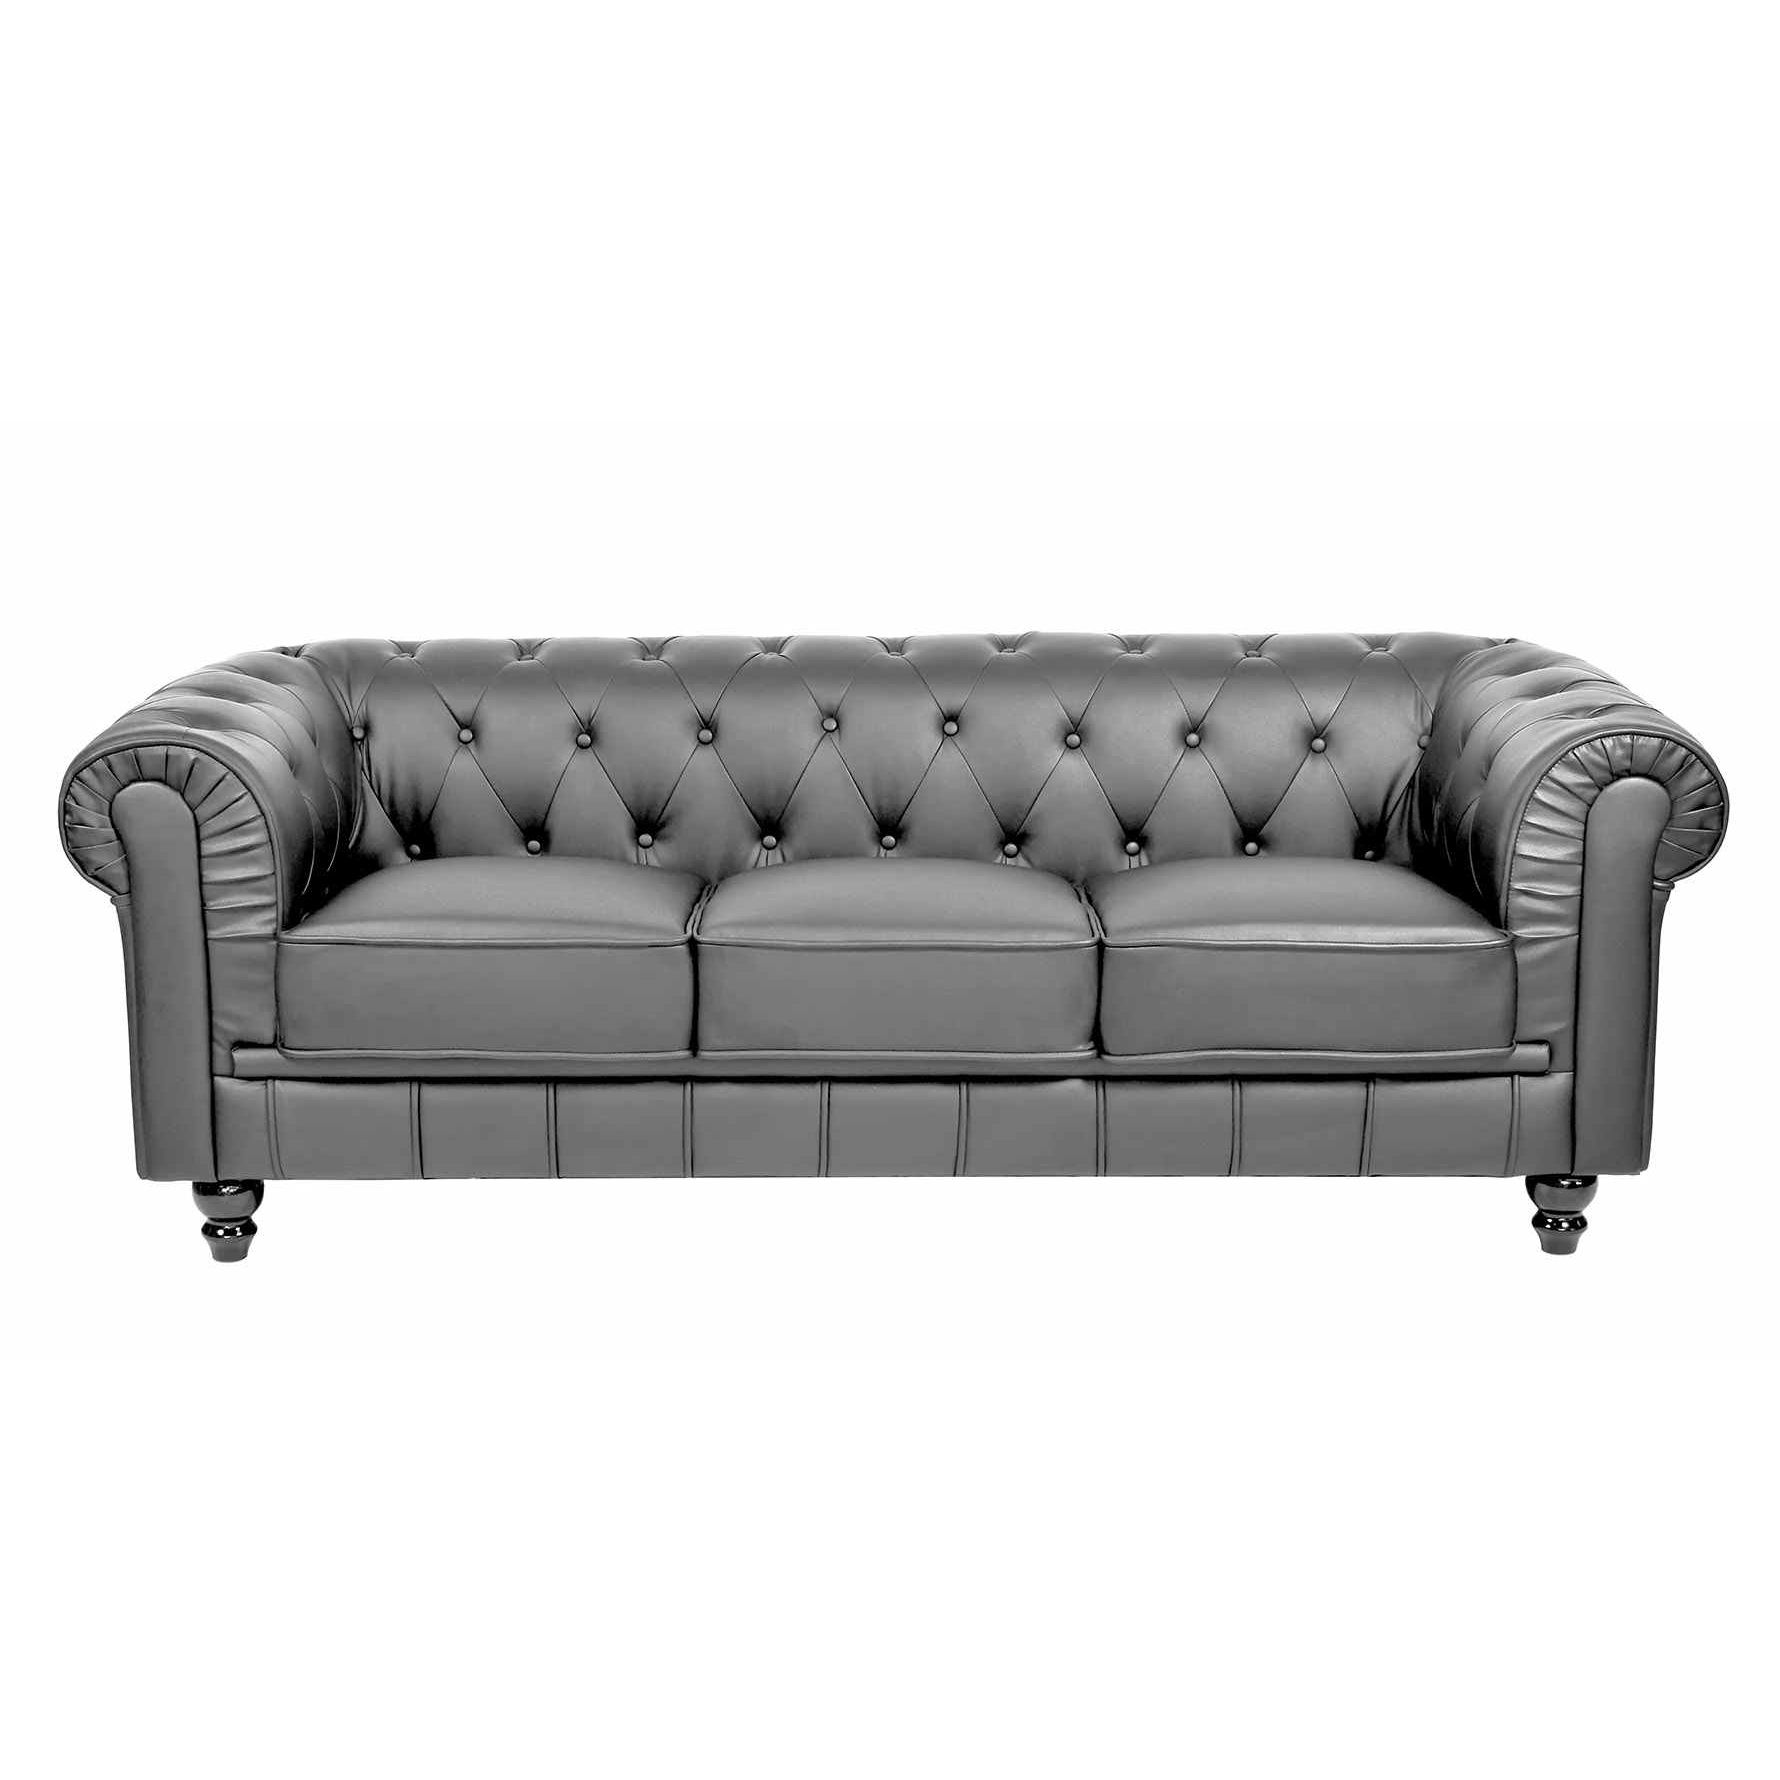 Deco in paris canape 3 places gris chesterfield can - Canape chesterfield tissu gris ...